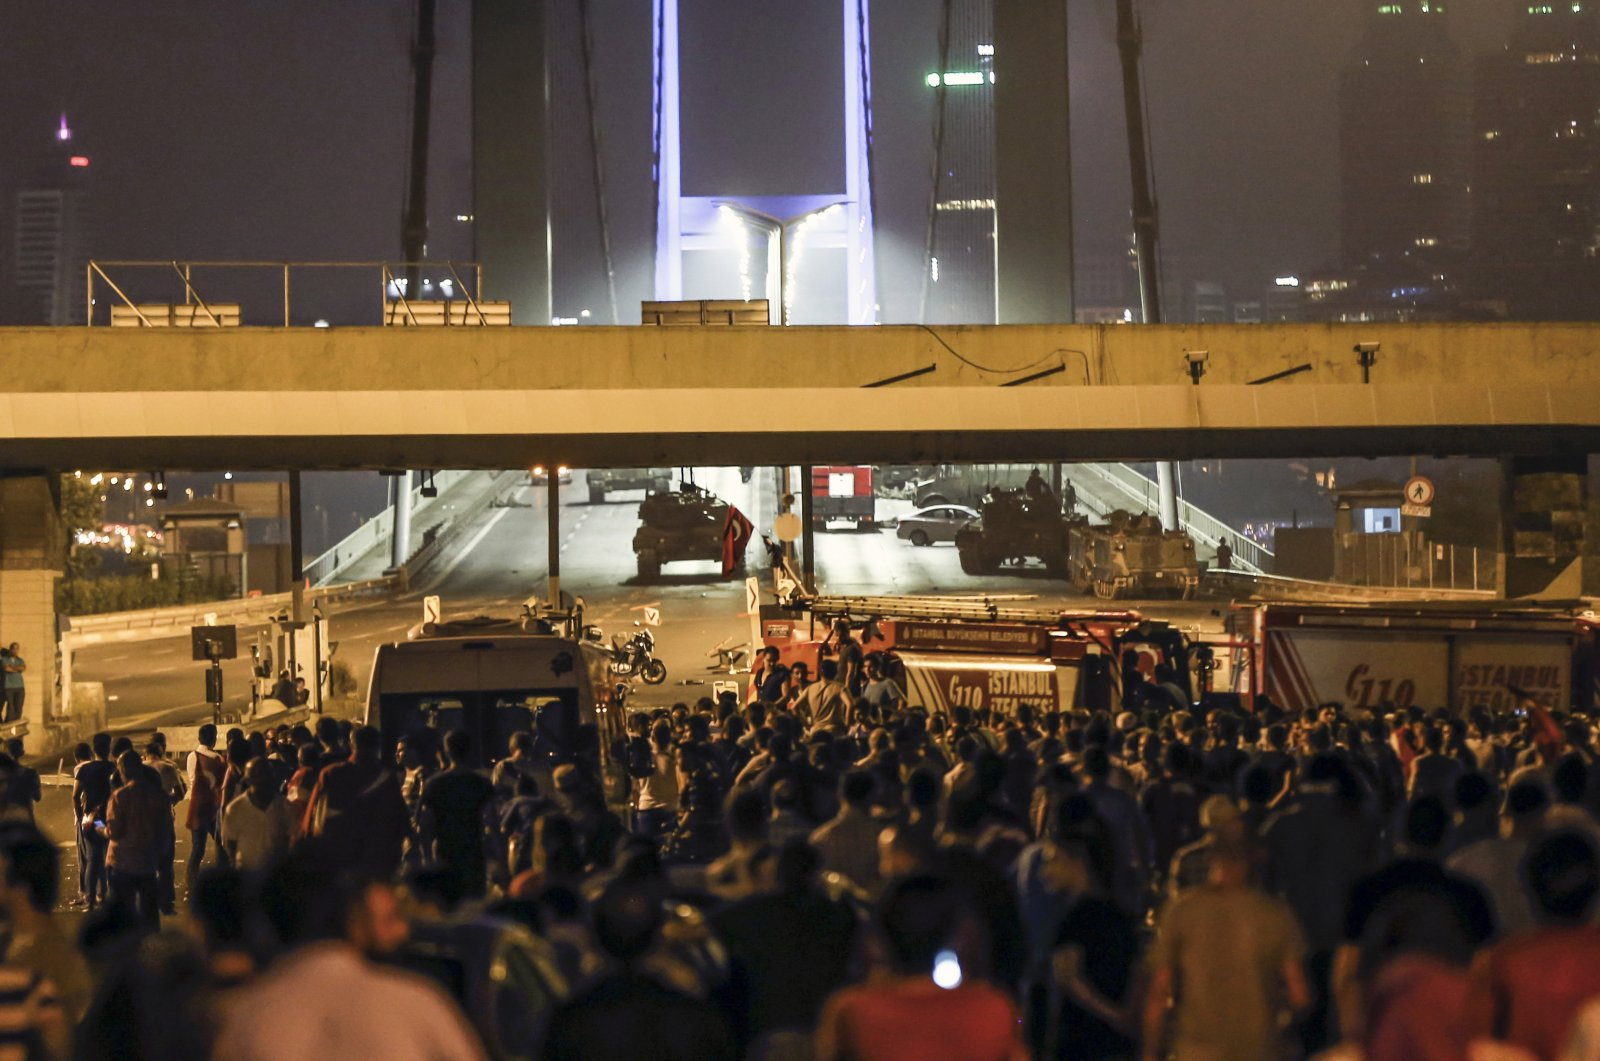 People march toward Istanbul's iconic then-Bosporus Bridge, now called the July 15 Martyrs' Bridge, to resist soldiers linked to the Gülenist Terror Group blocking the bridge road as part of their coup plan, Istanbul, July 15, 2016. (AA Photo)